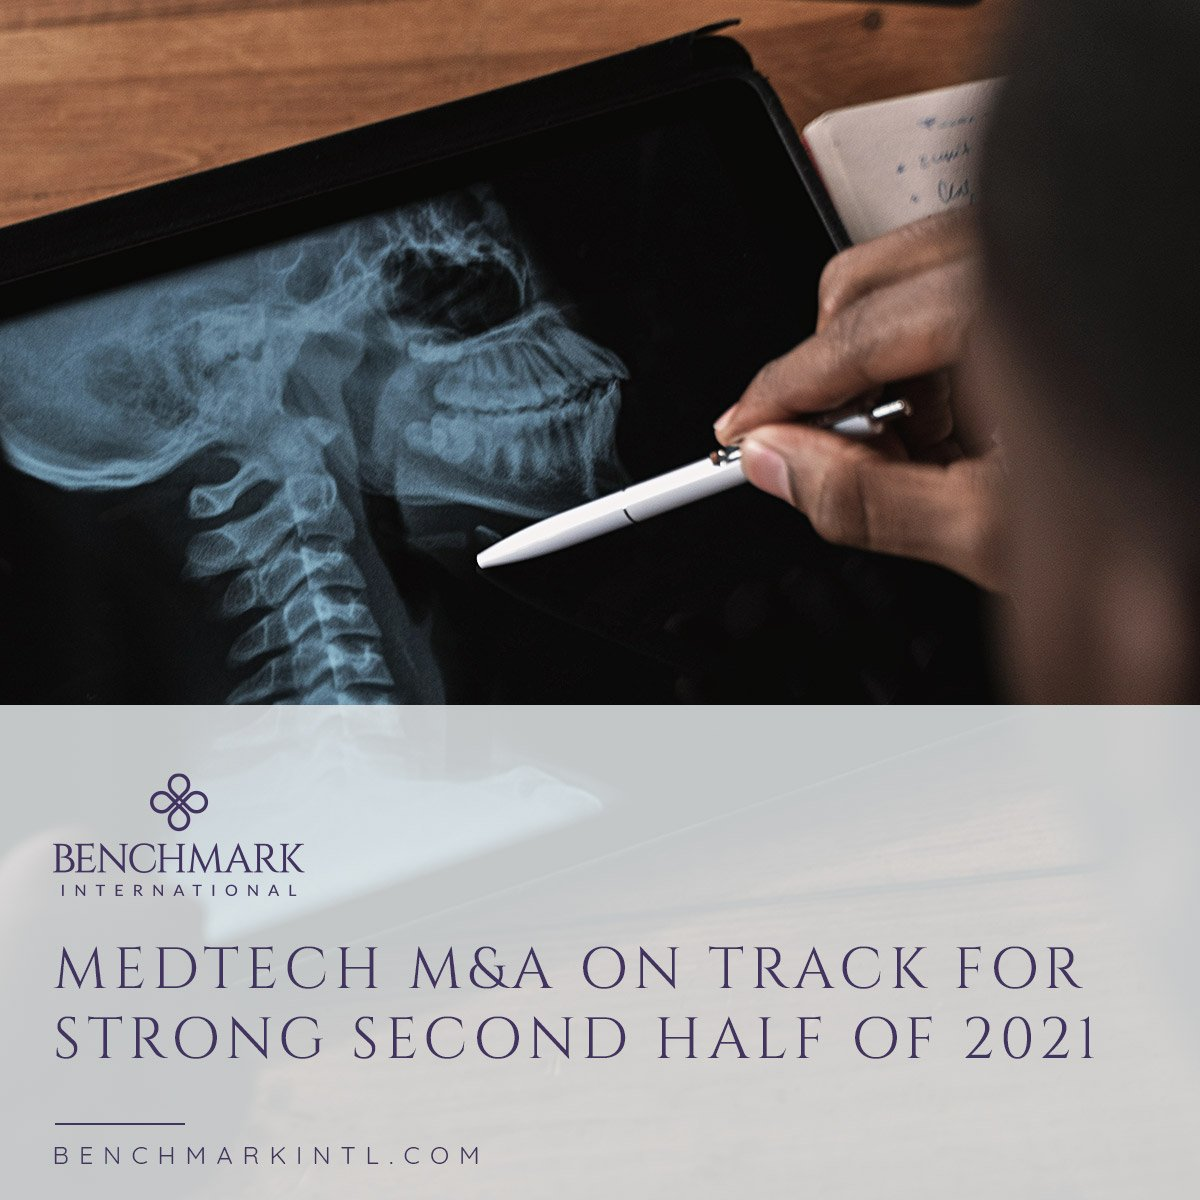 MedTech_M&A_On_Track_For_Strong_Second_Half_of_2021_Social